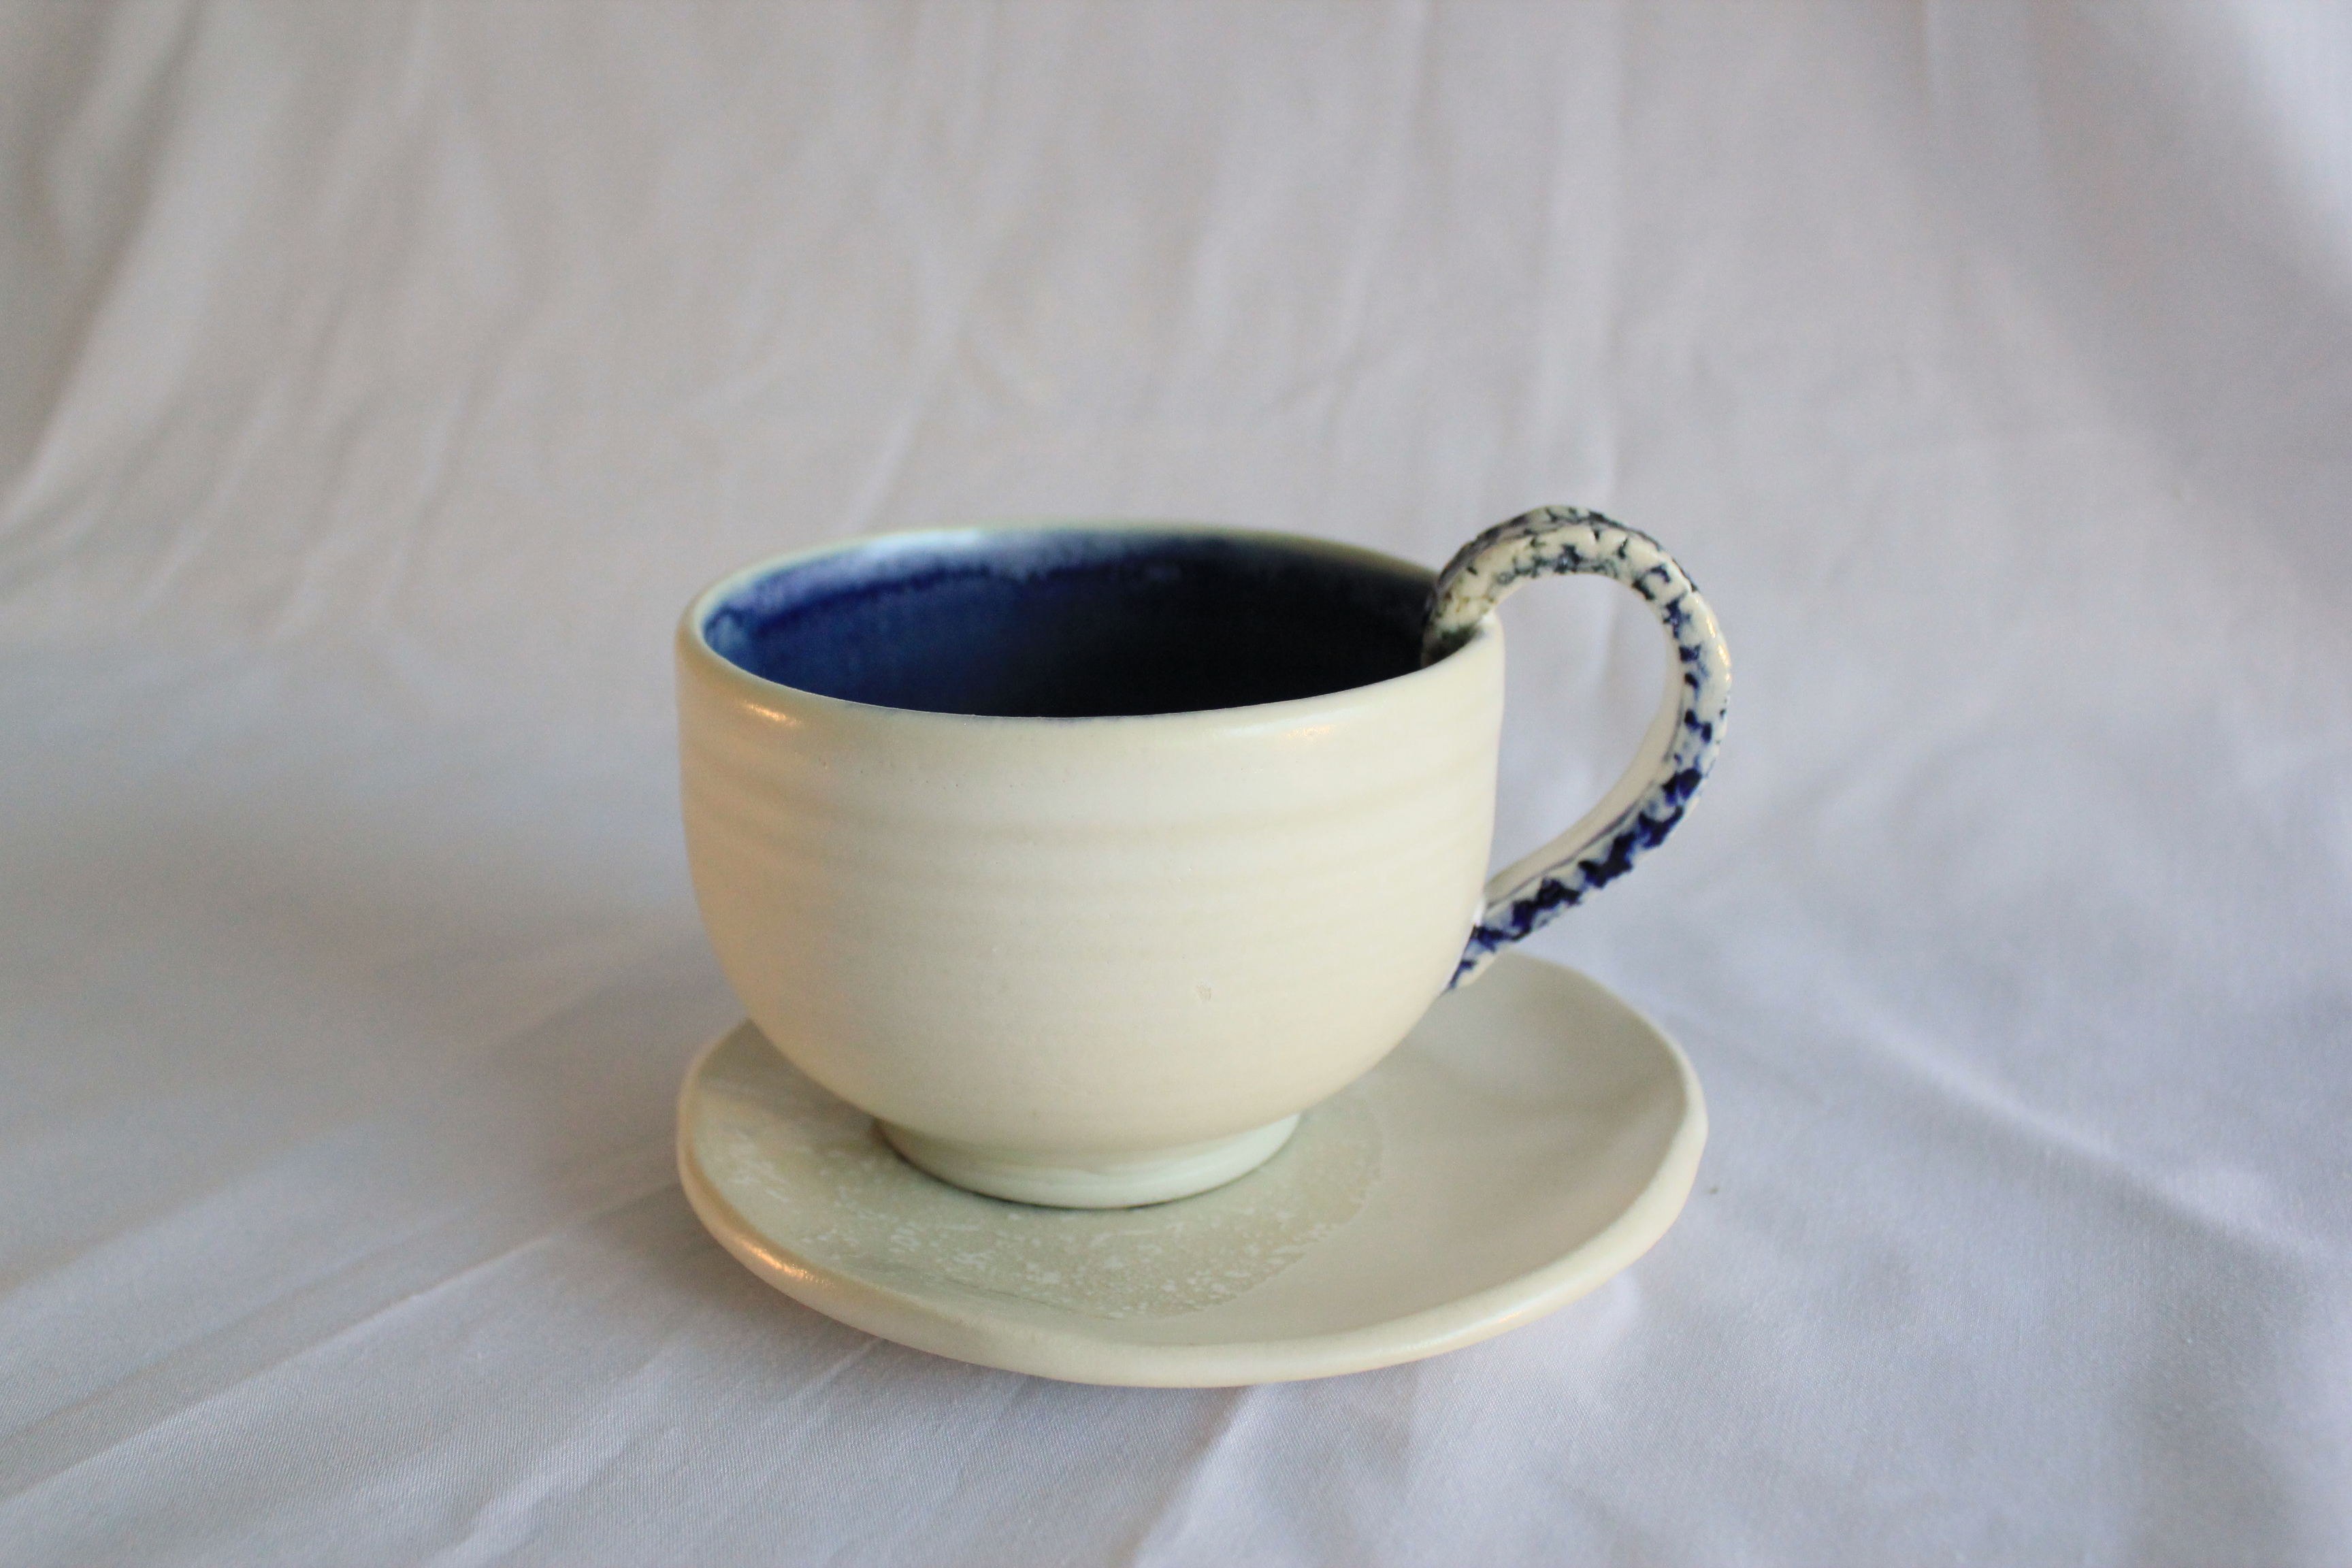 Blue teacup and saucer